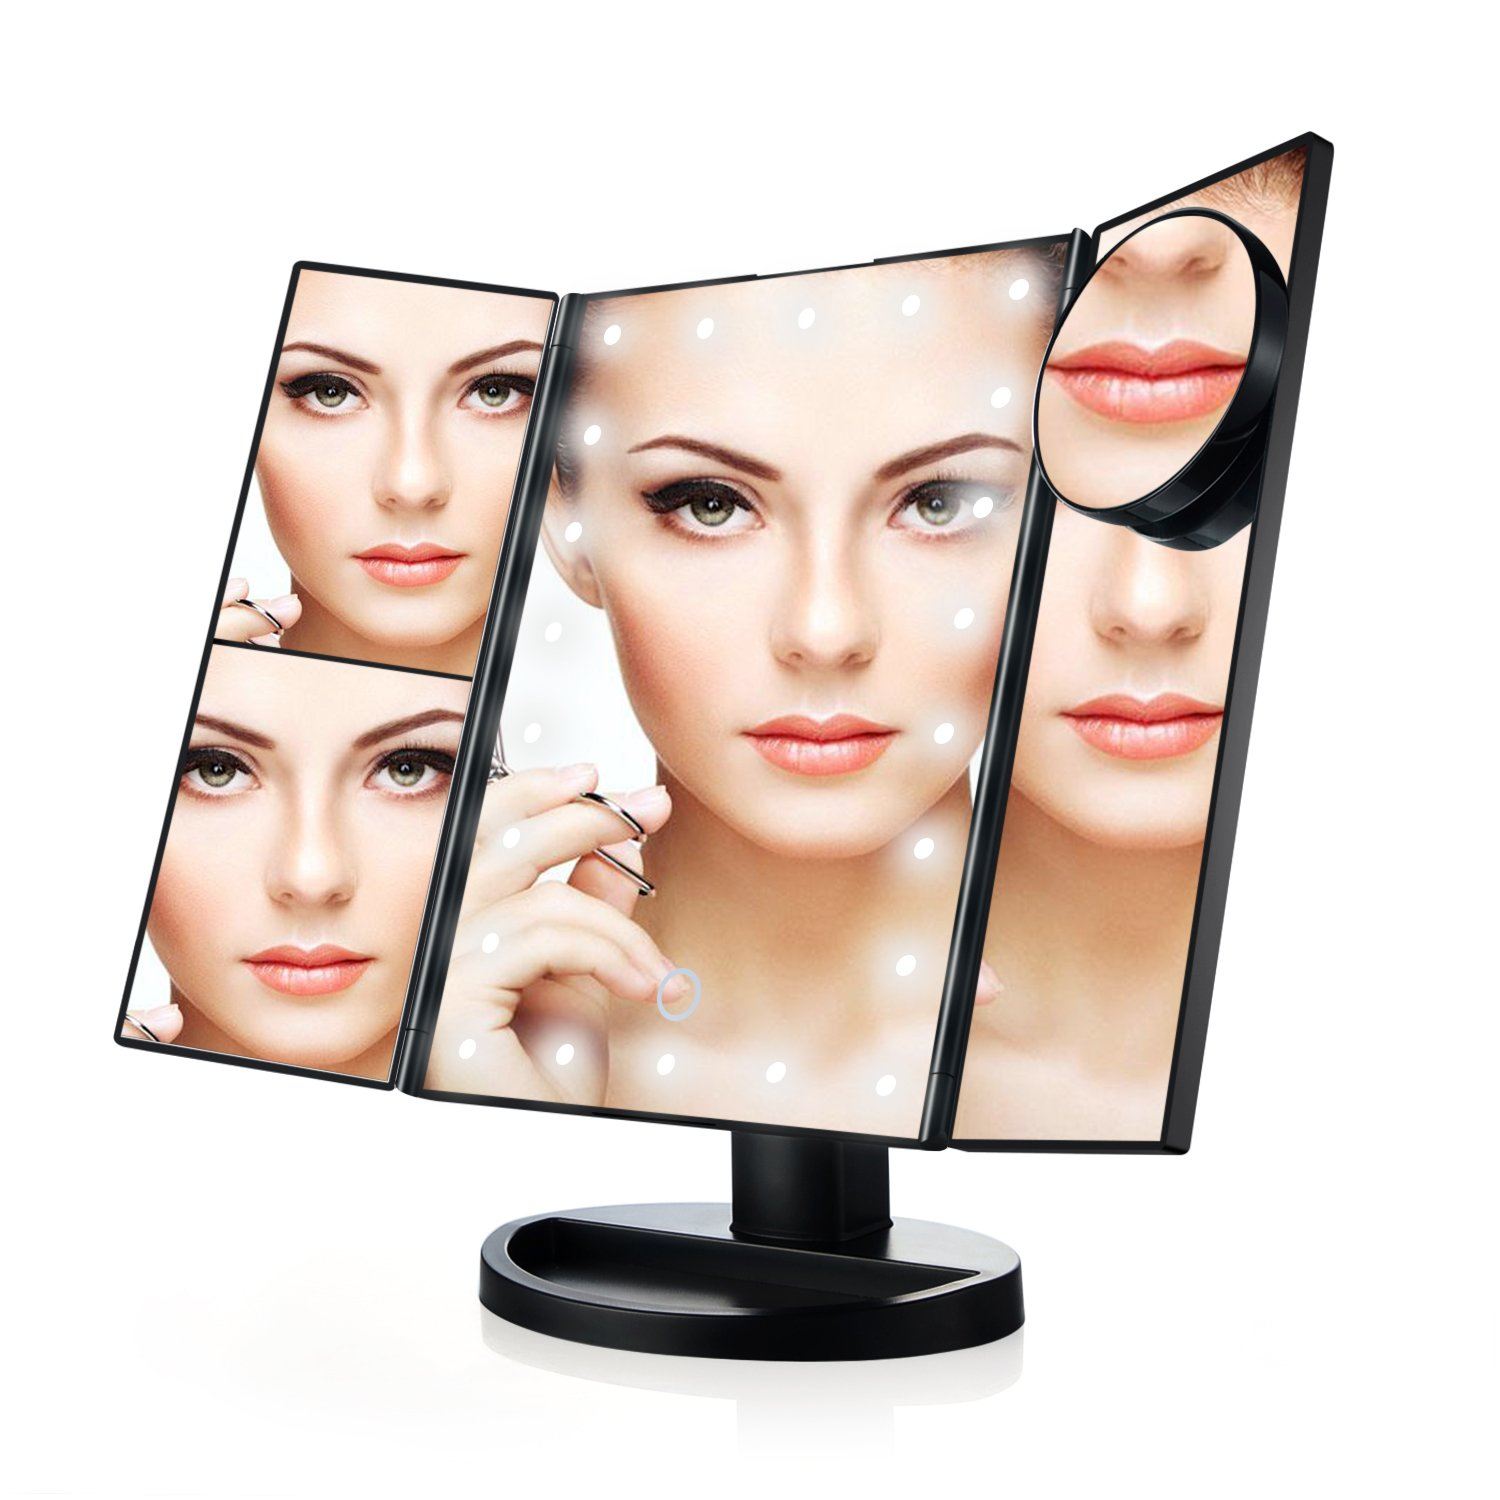 Makeup Mirror Tri-Fold Vanity Lighted Touch Screen with 21 LED, 1X/2X/3X/10X Magnification Illuminating Travel Cosmetic Mirror (Black)